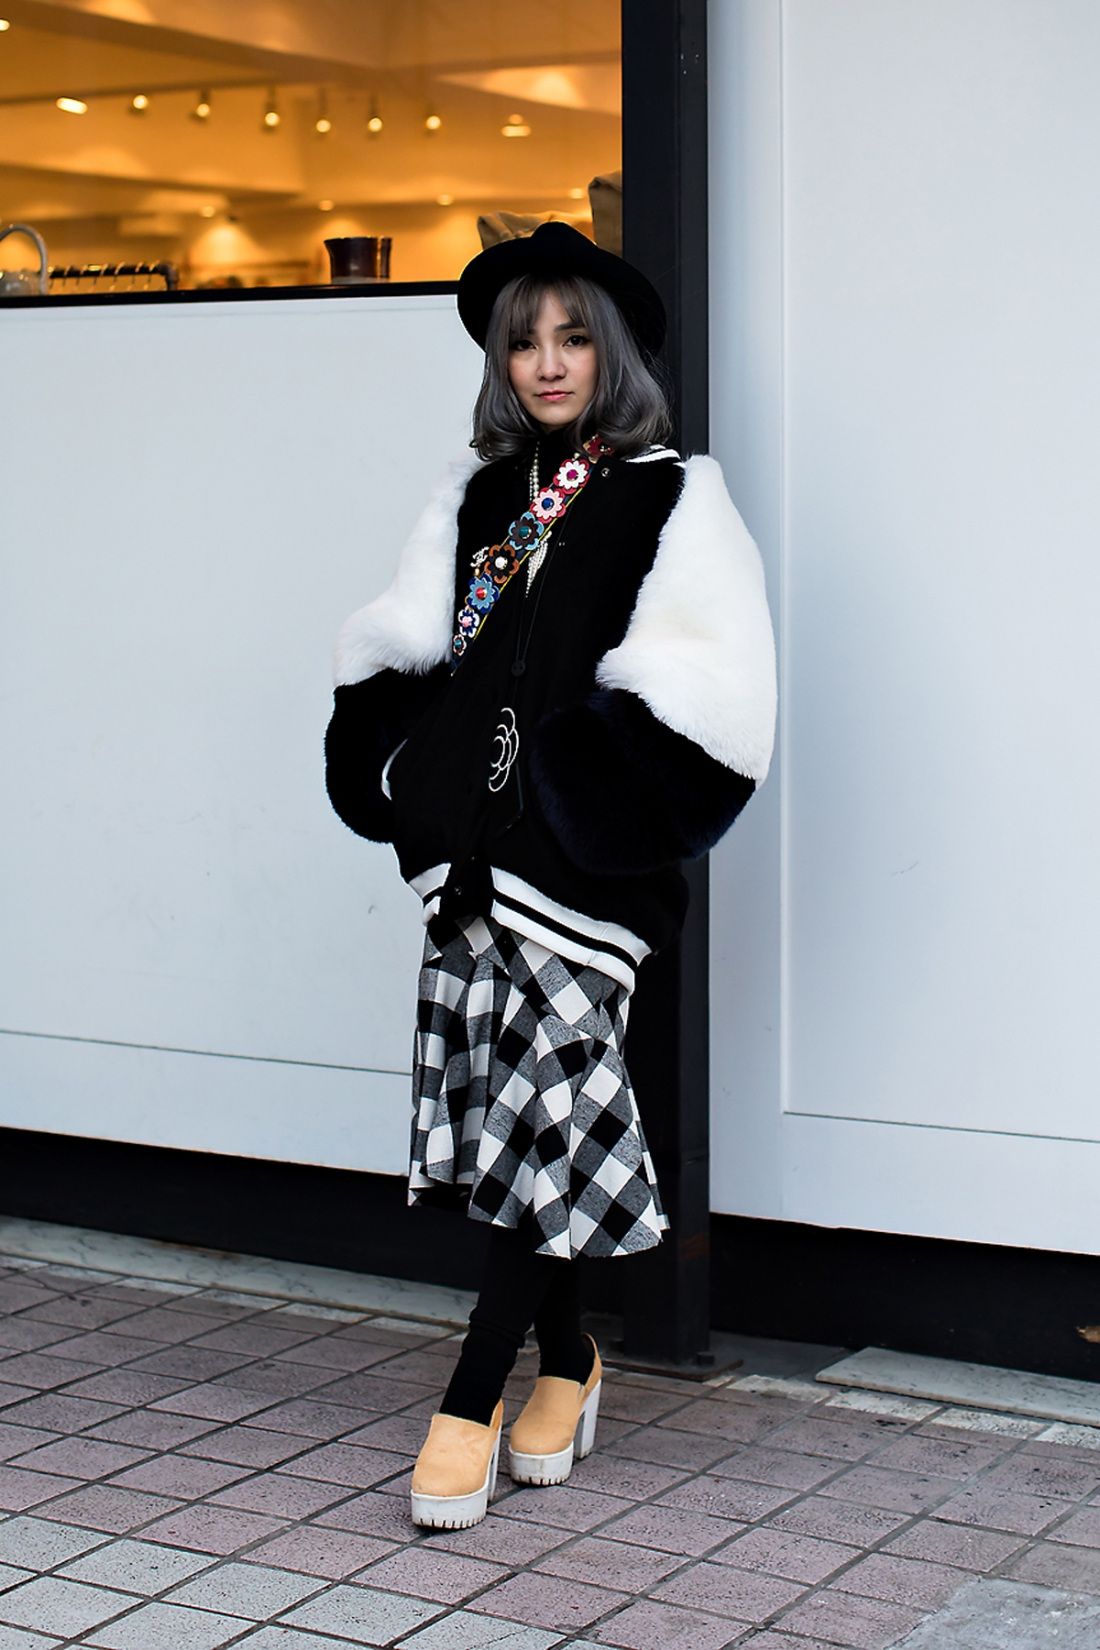 Gwyneth wong, Street Fashion 2017 in SEOUL.jpg